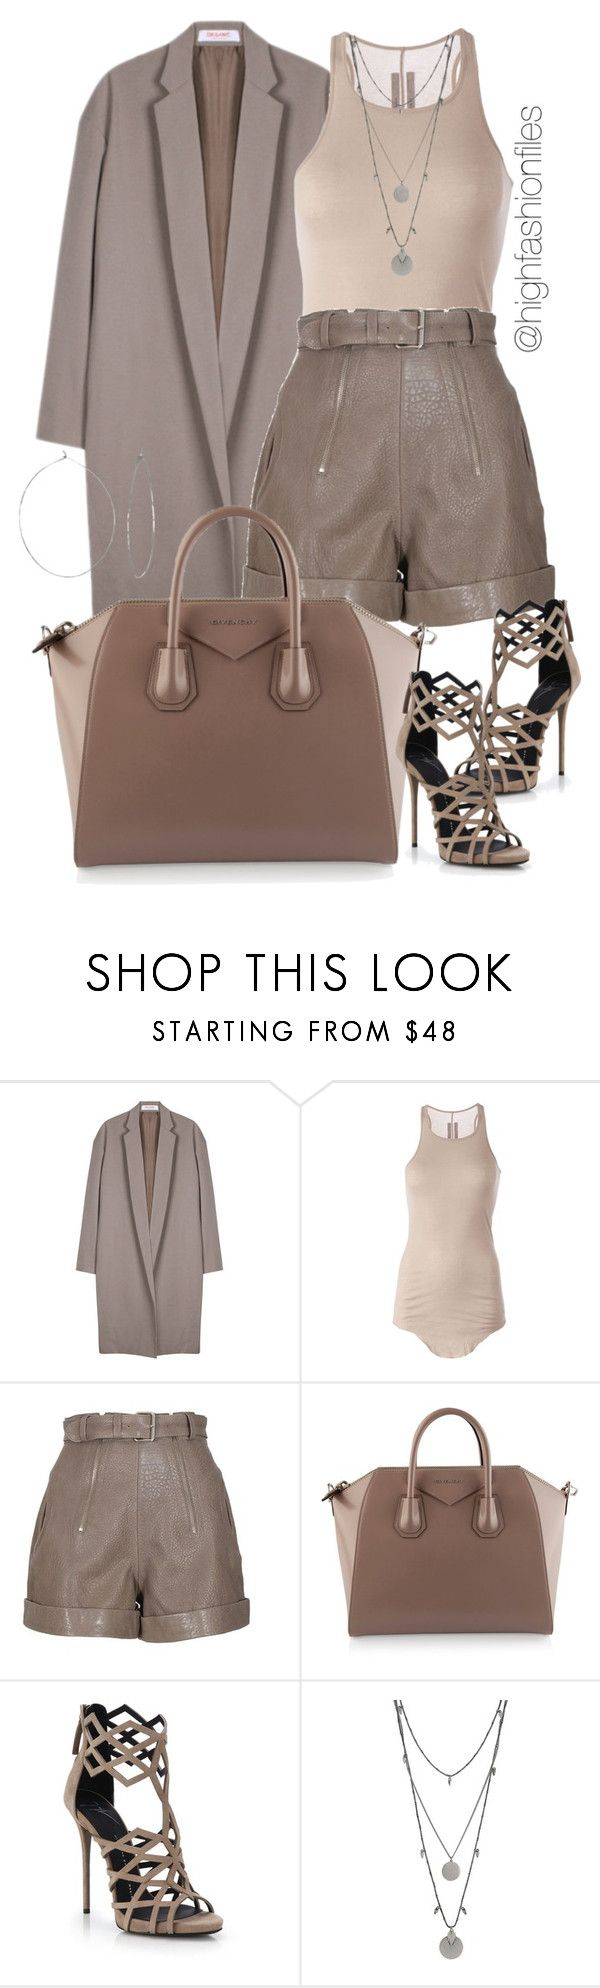 """Taupe"" by highfashionfiles ❤ liked on Polyvore featuring Organic by John Patrick, Rick Owens, Carven, Givenchy, Giuseppe Zanotti, Vince Camuto and Phyllis + Rosie"